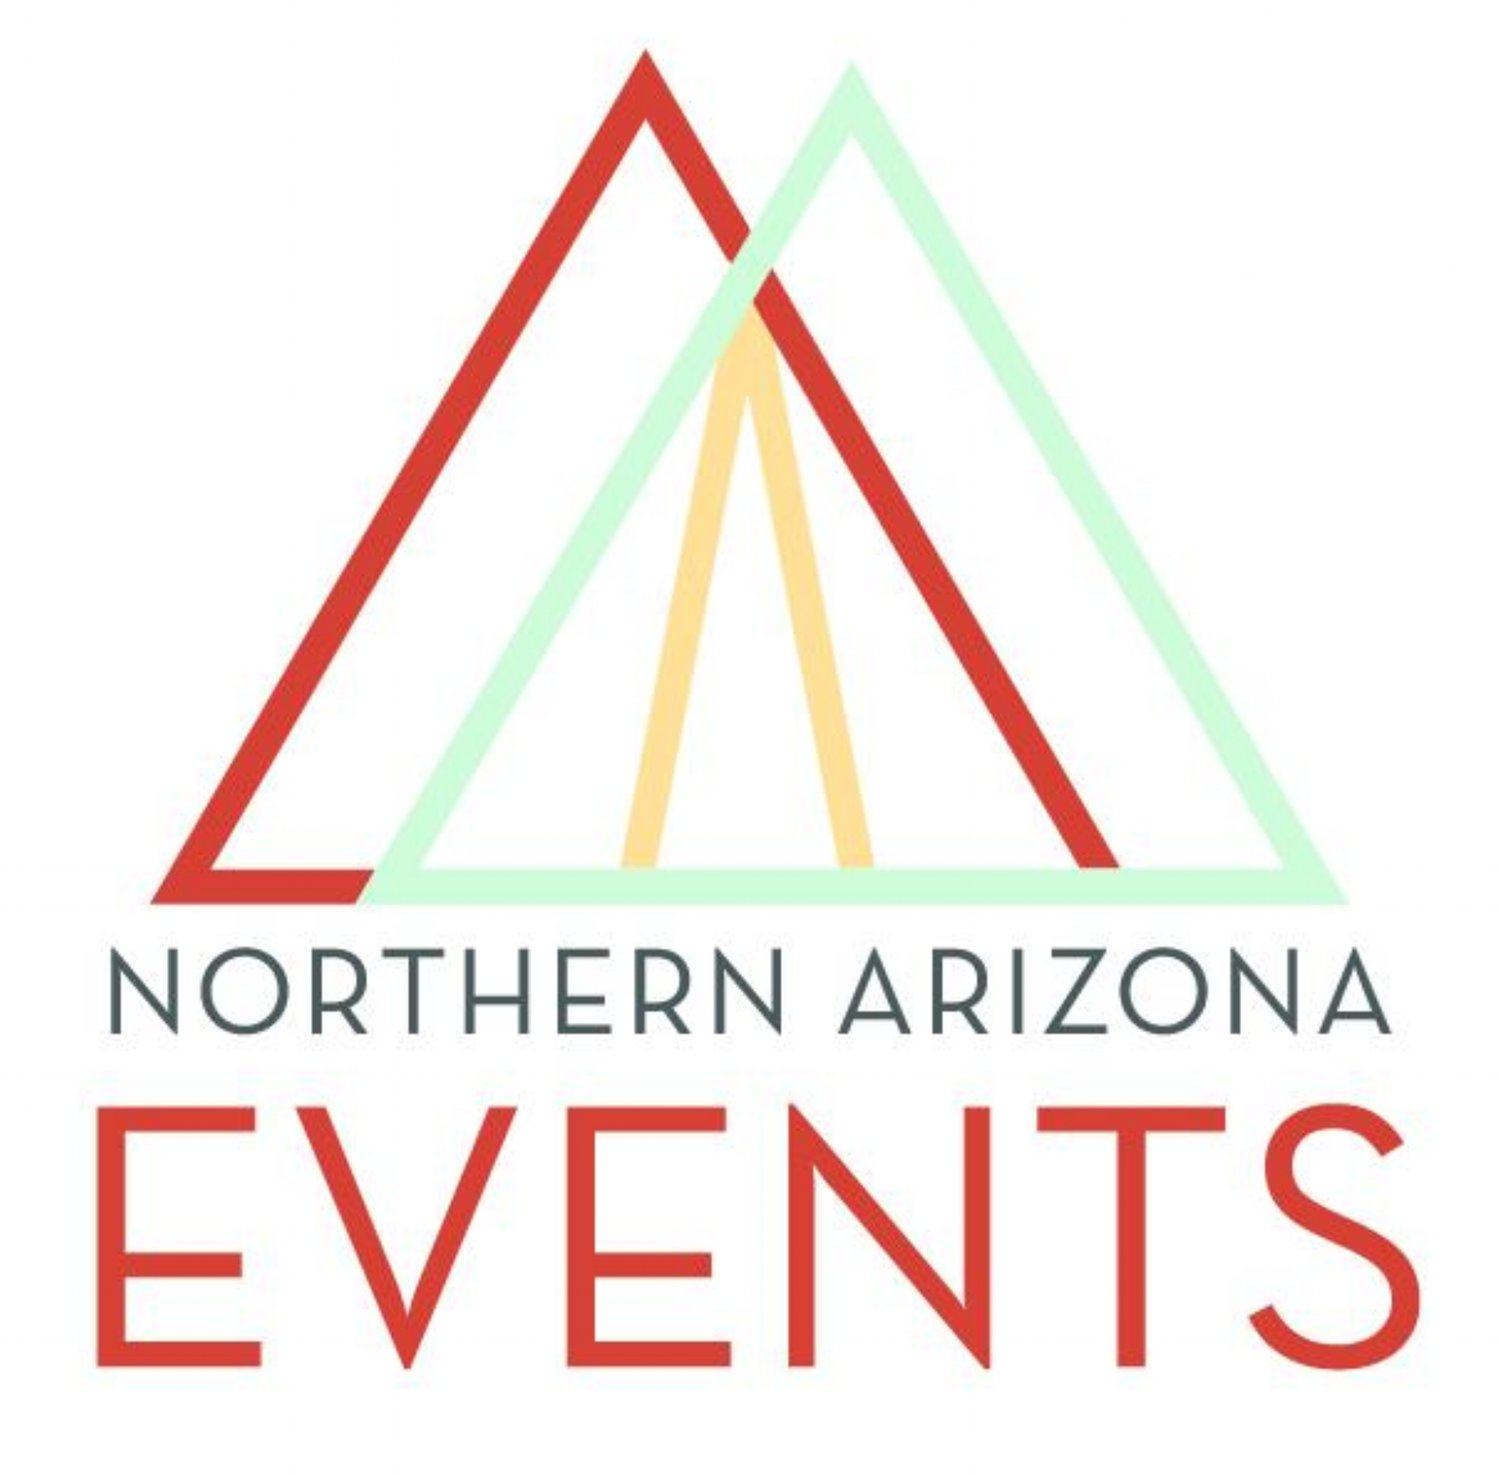 Northern Arizona Events